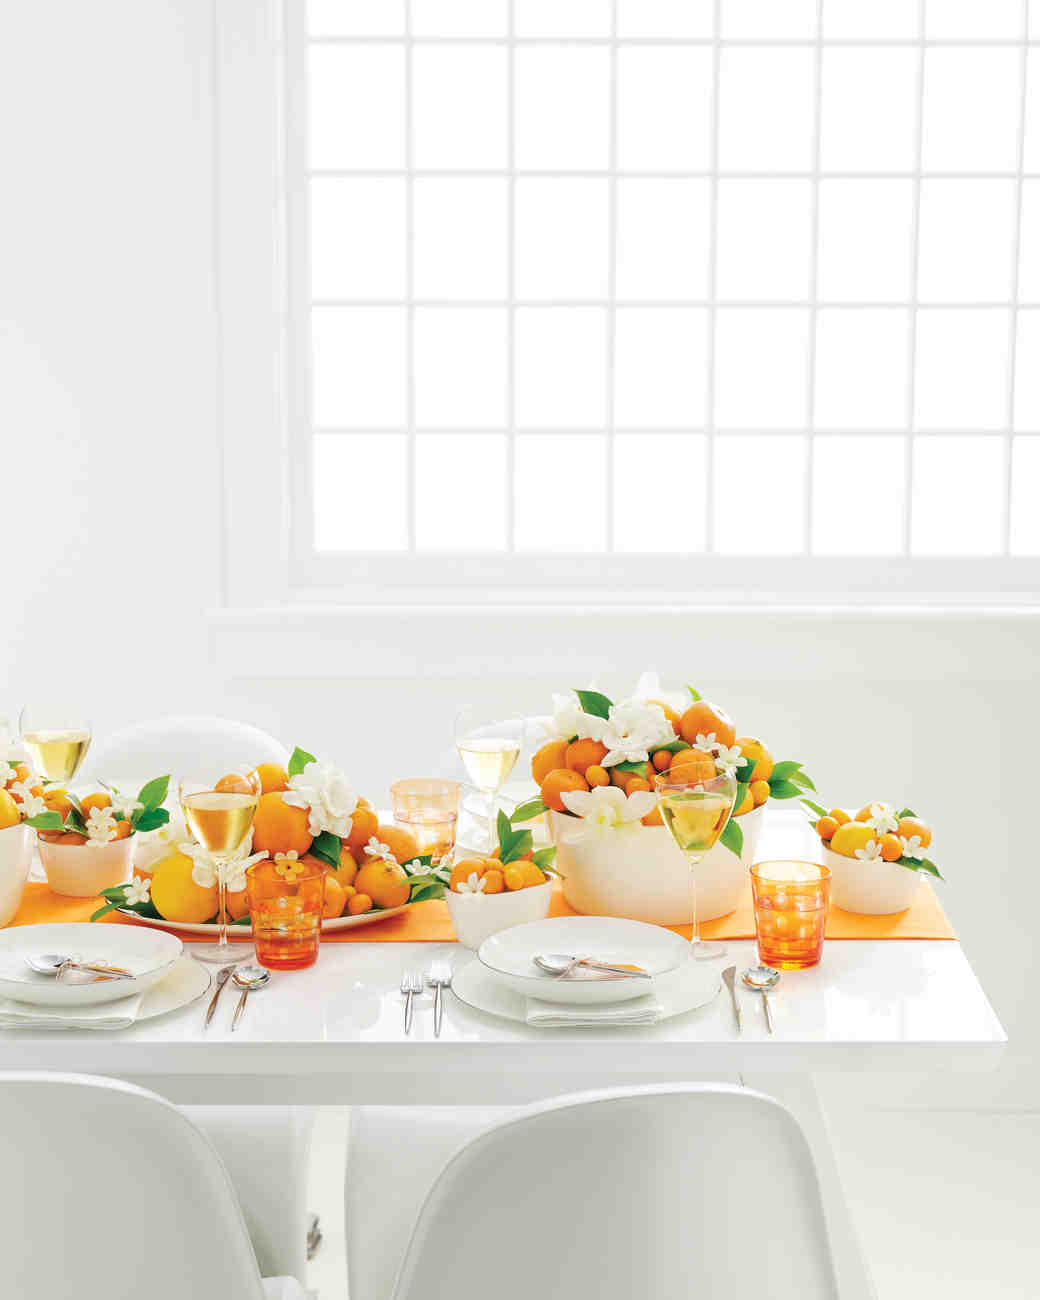 fruit-vegetable-centerpieces-oranges-1114.jpg